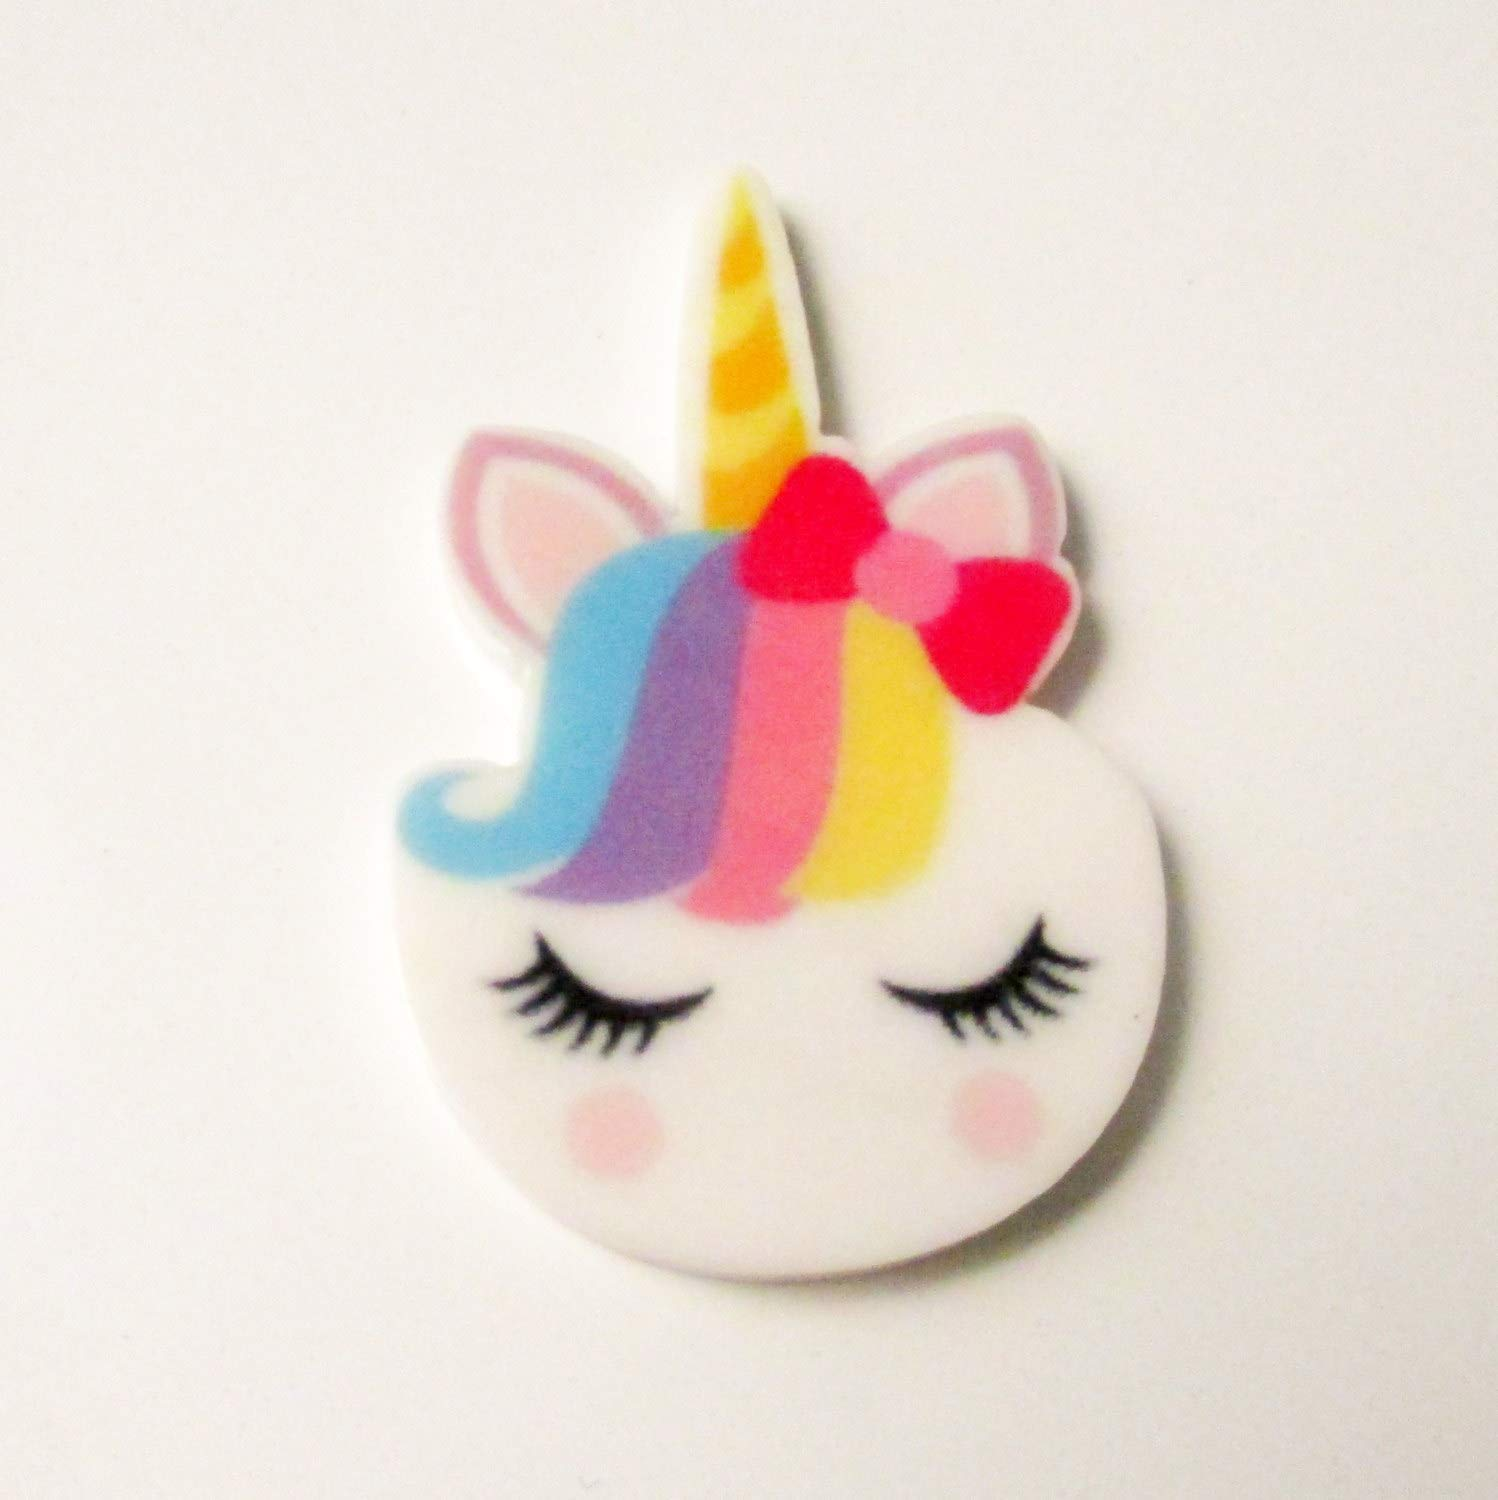 Needle Notion Unicorn Resin Needle Minder Hand Needle Notion Cross Stitching